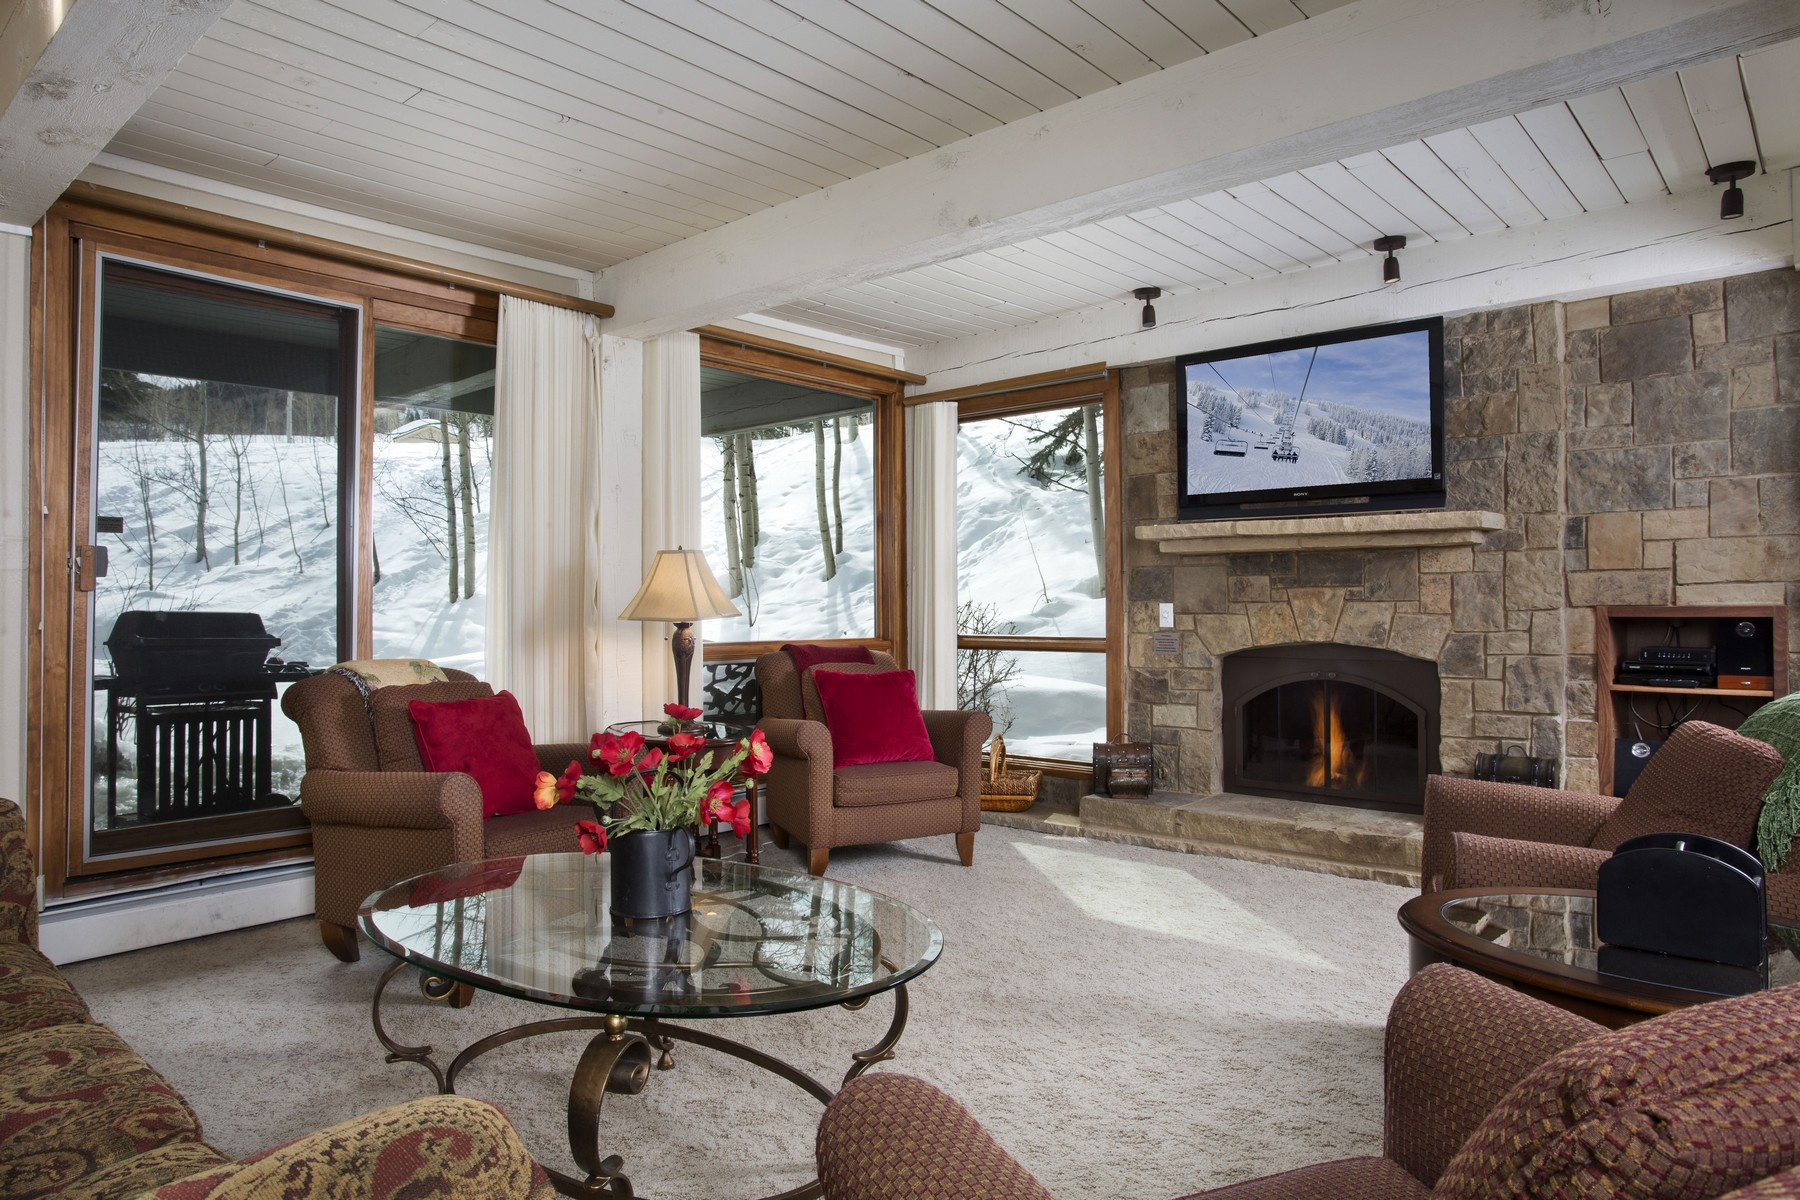 Condominium for Sale at TOV/Aspen Trails Unit: 109 855 Carriage Way Aspen, Colorado 81615 United States